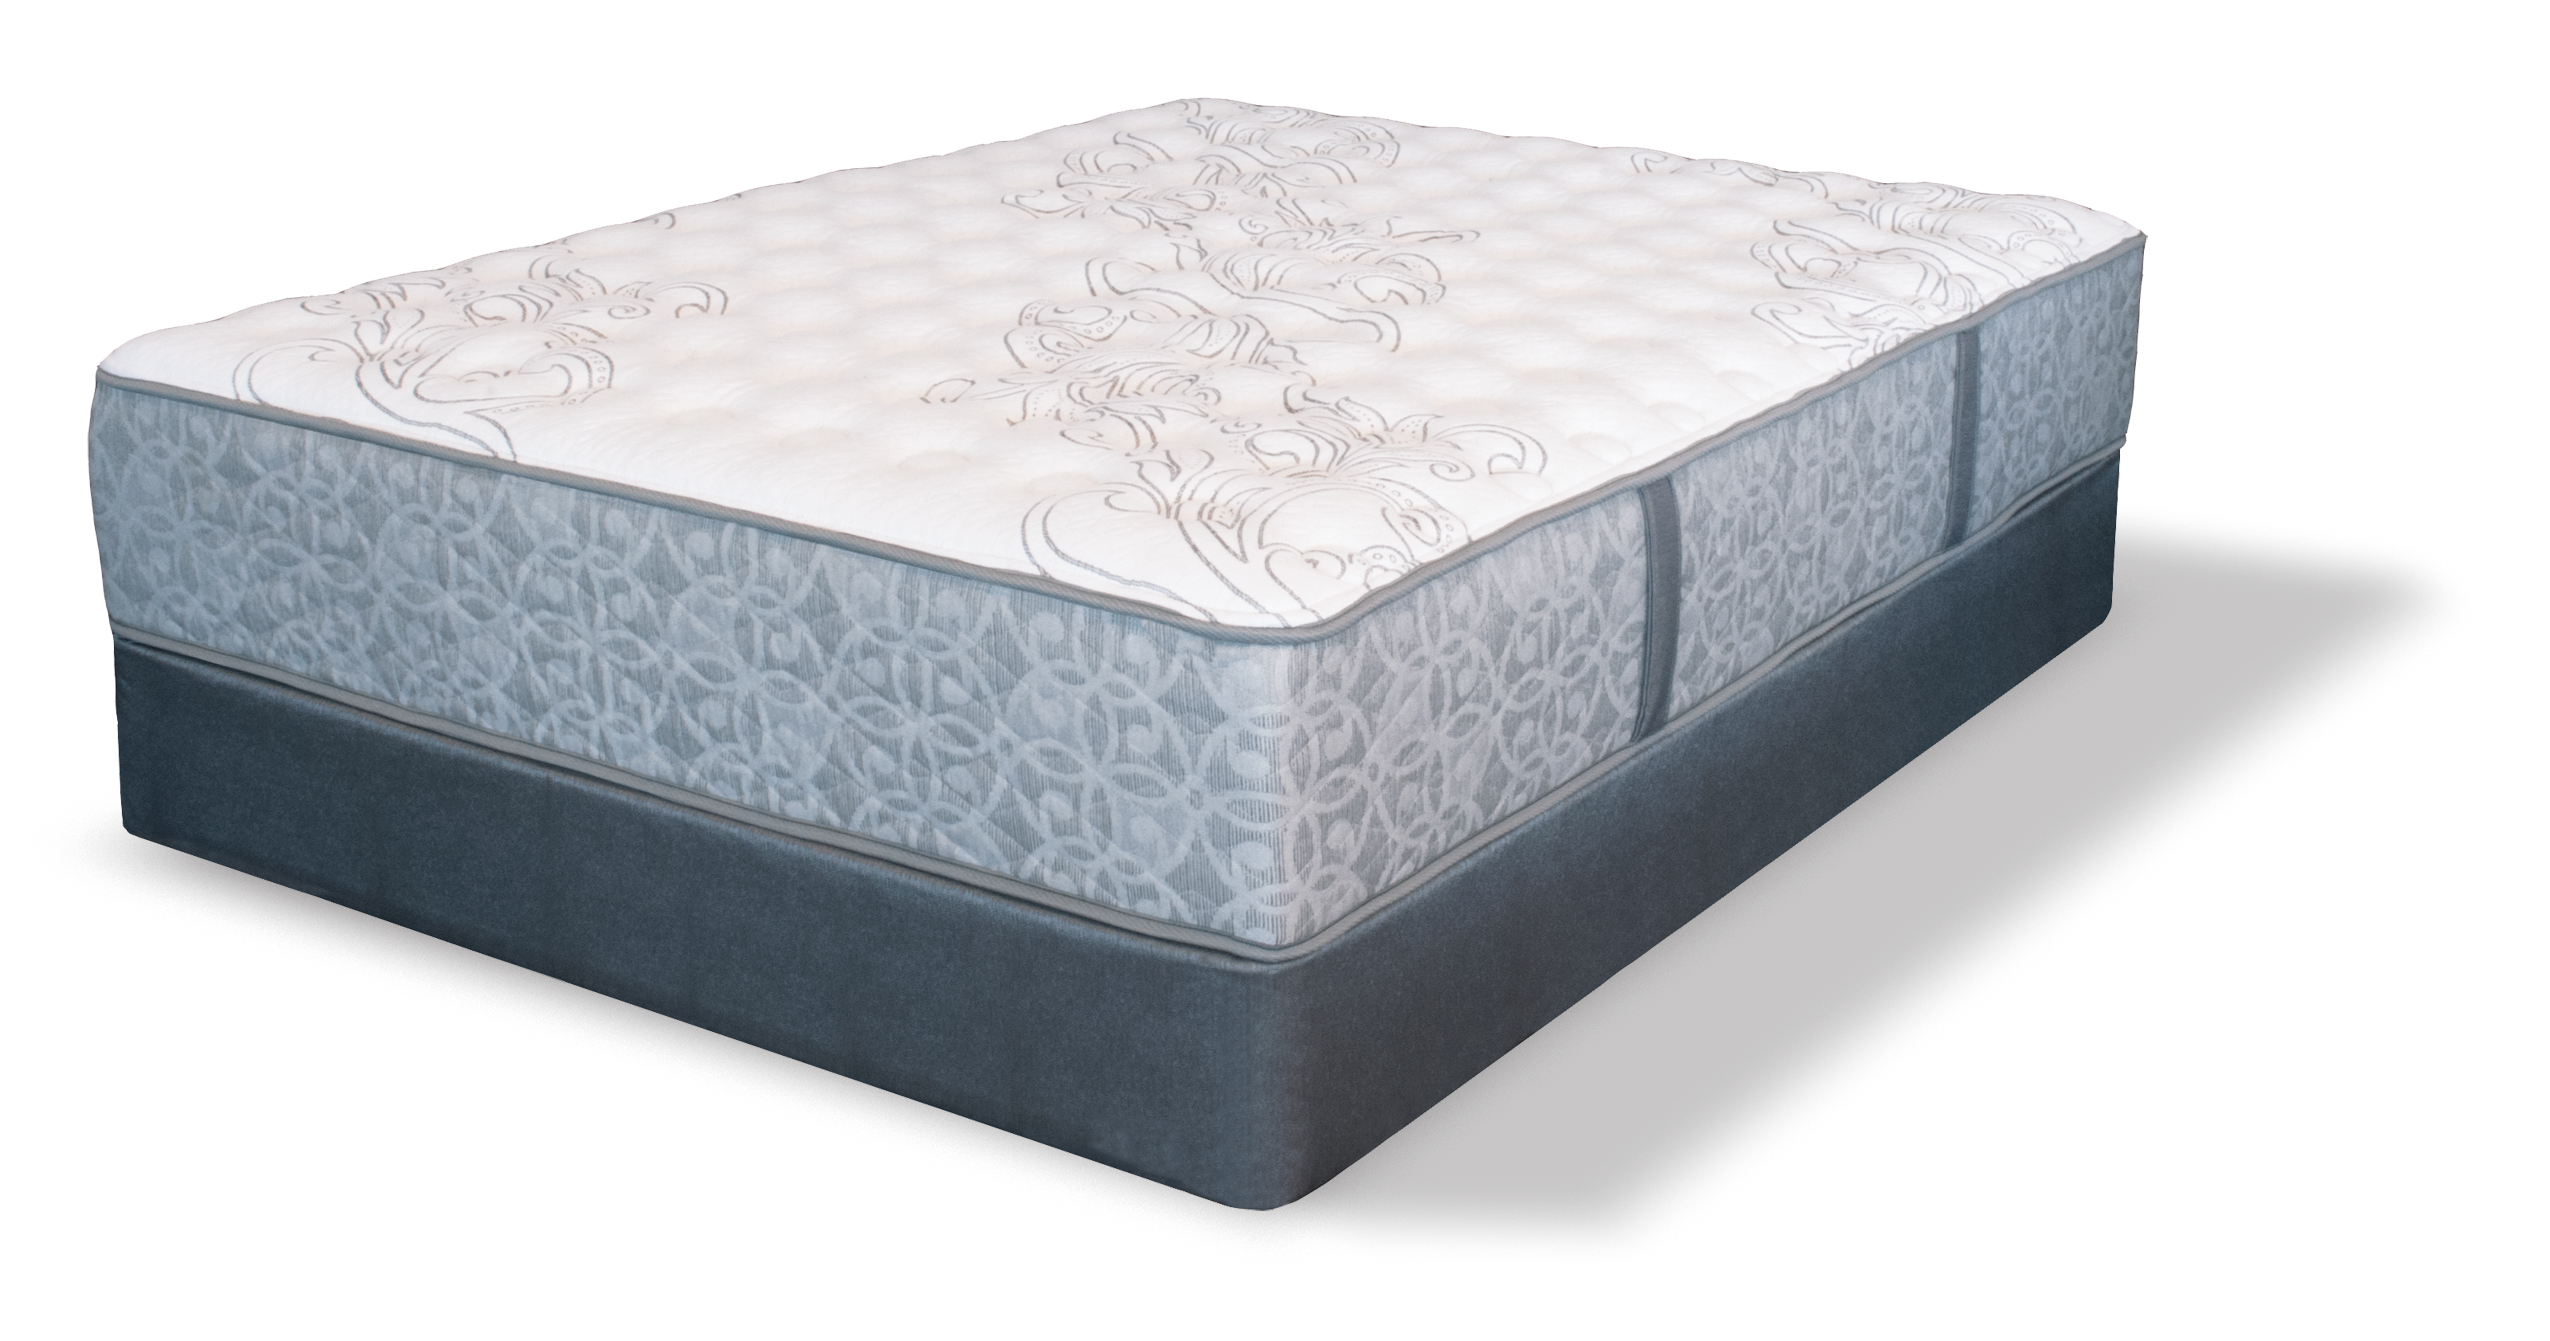 Firm Mattress For Sale Sealy Mattresses On Sale Sort By Firm Extra Firm Mattresses Serta